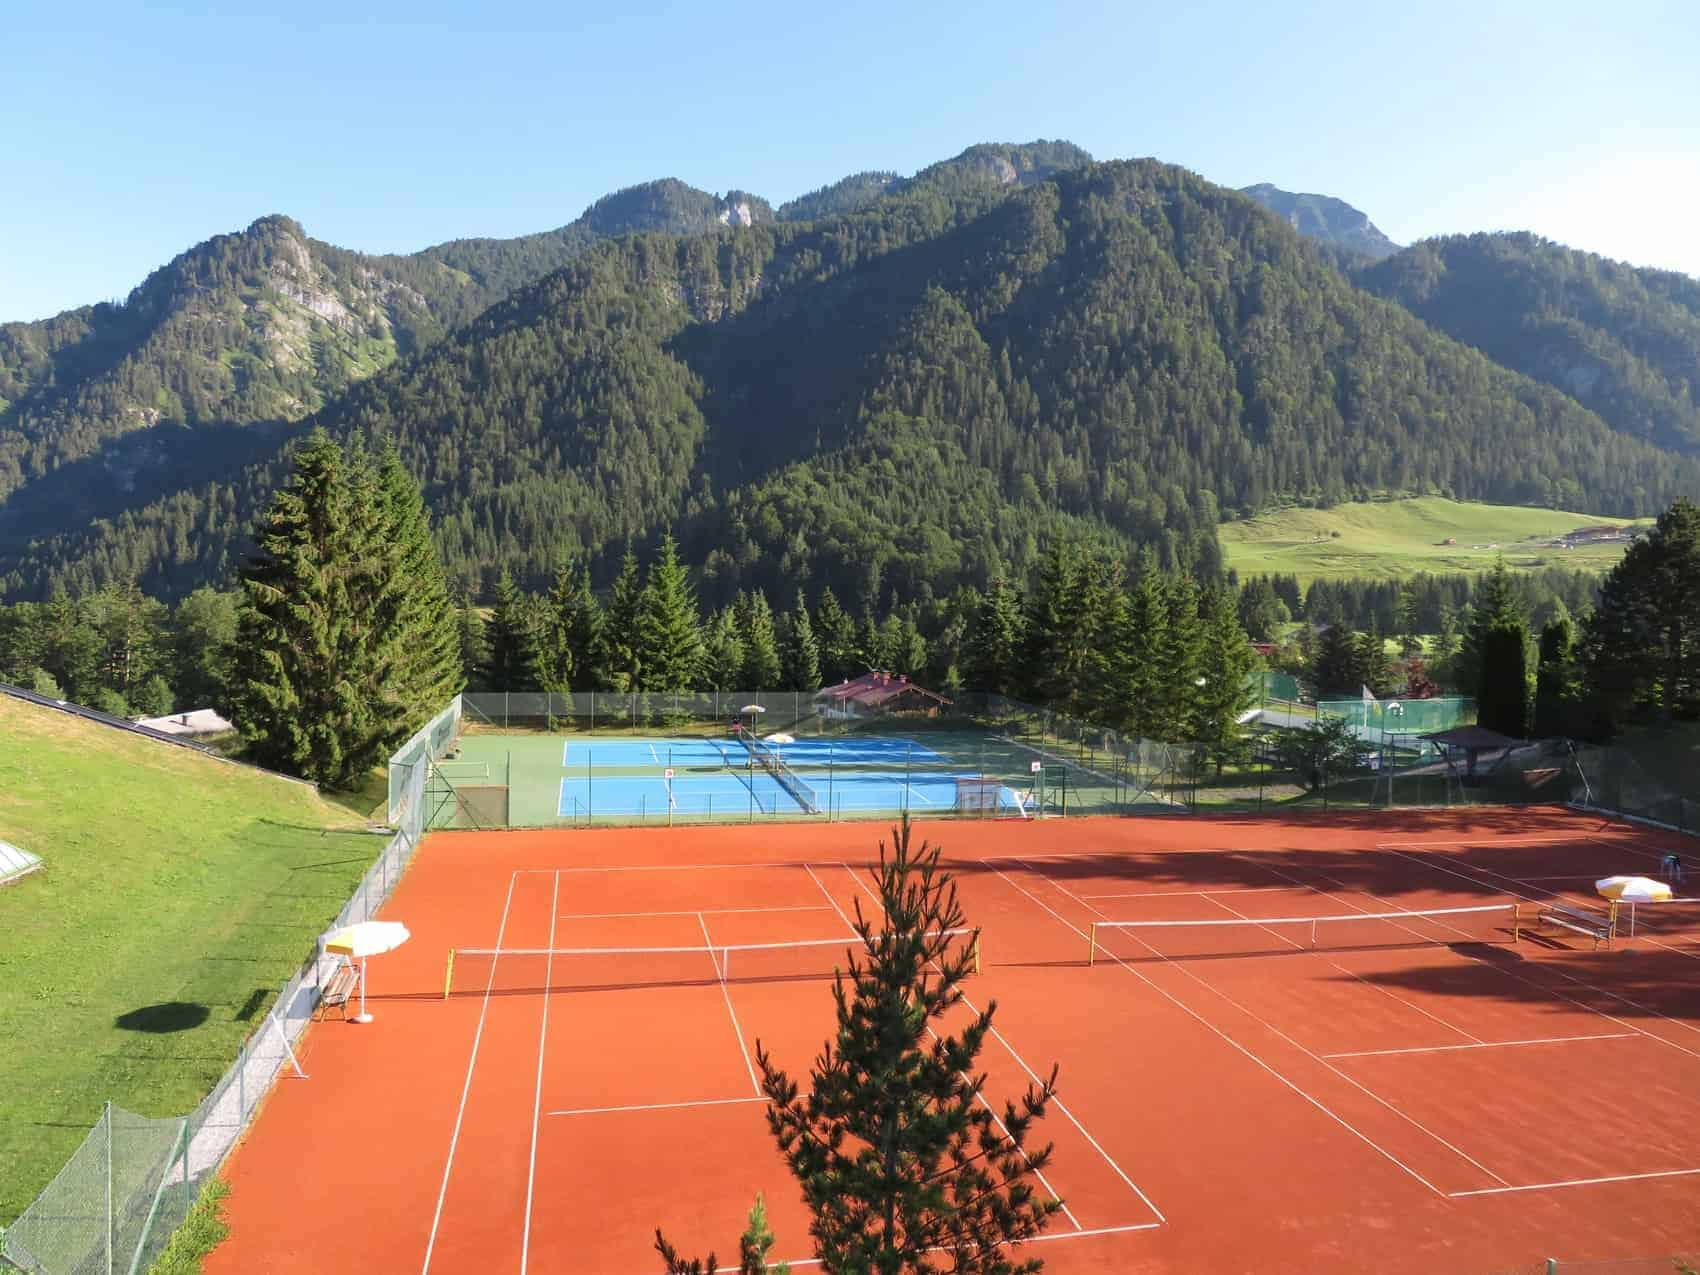 Laerchenhof tennis